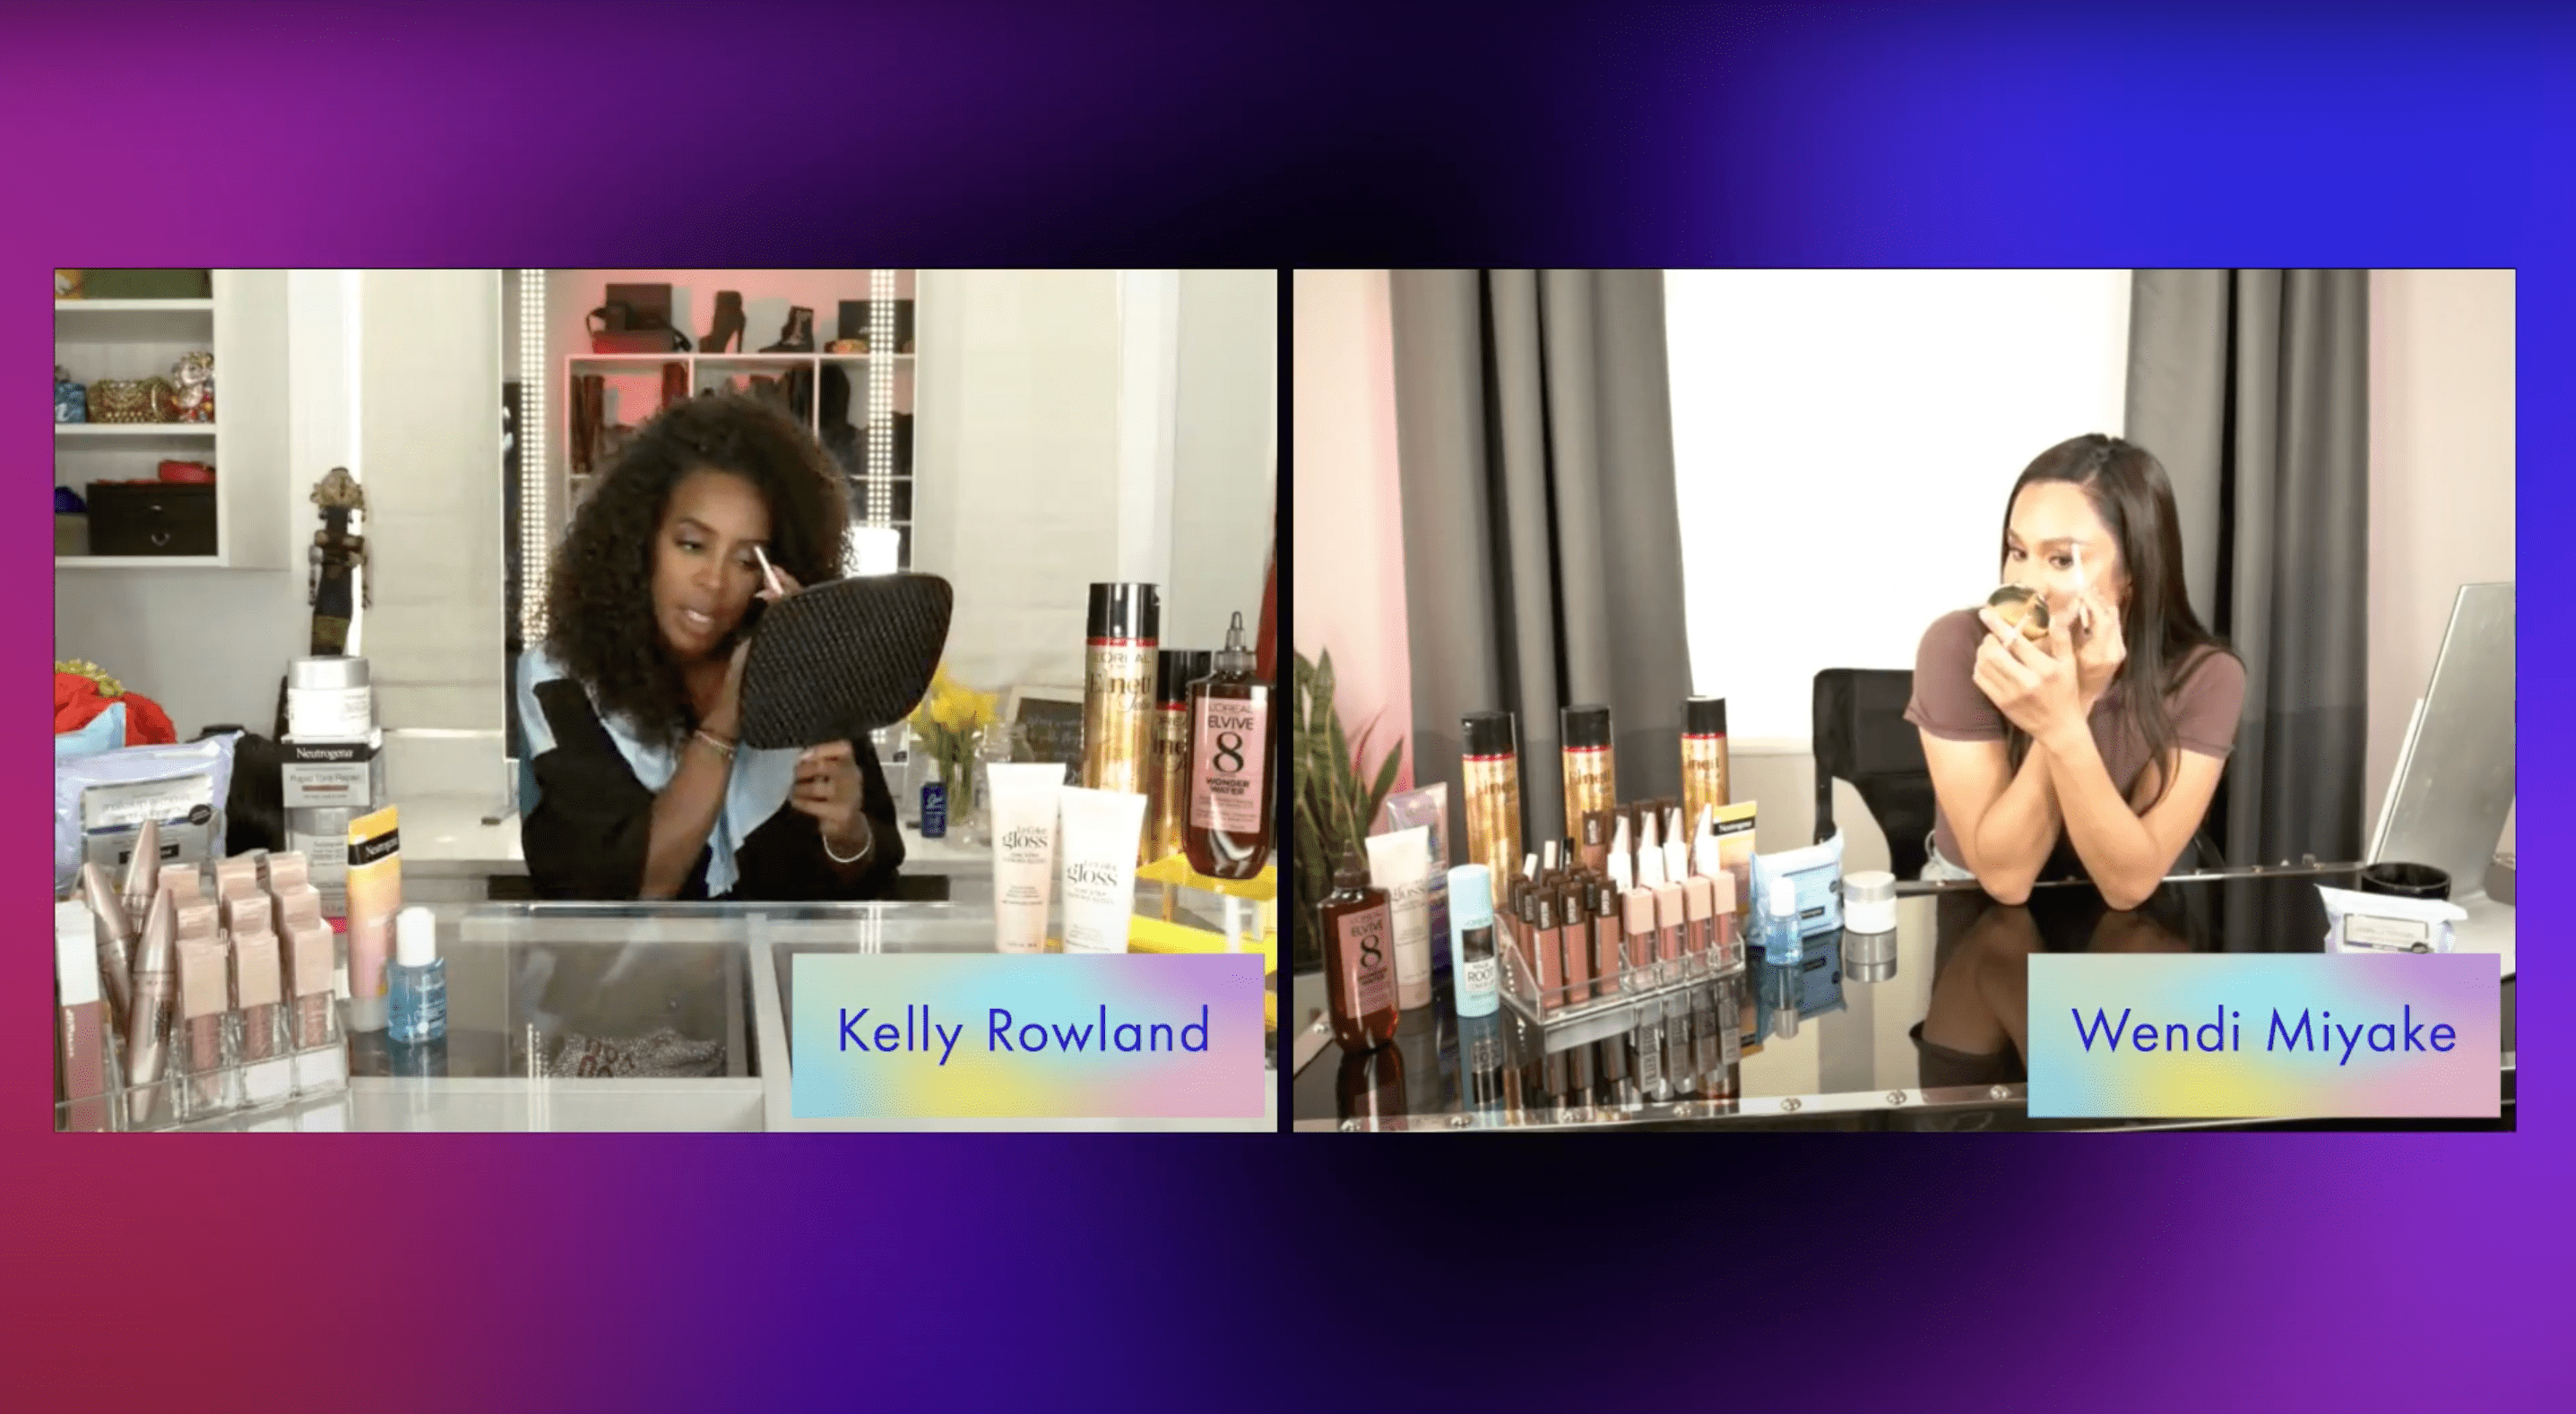 kelly rowland and wendi miyoke showcase product during a livestream brand experience